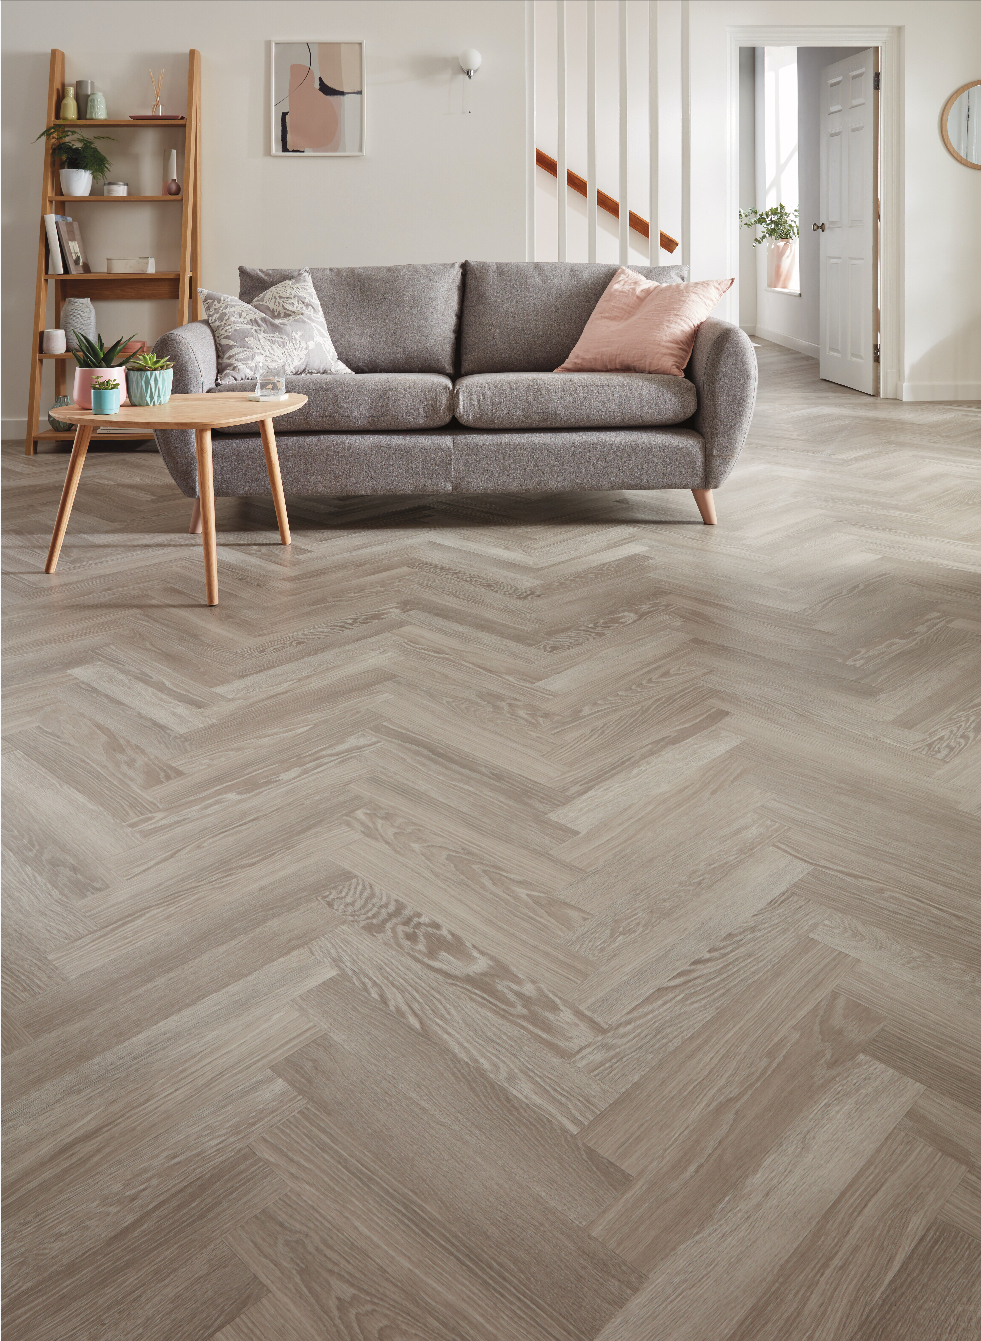 Cream room with chevron flooring a grey couch and wooden furniture